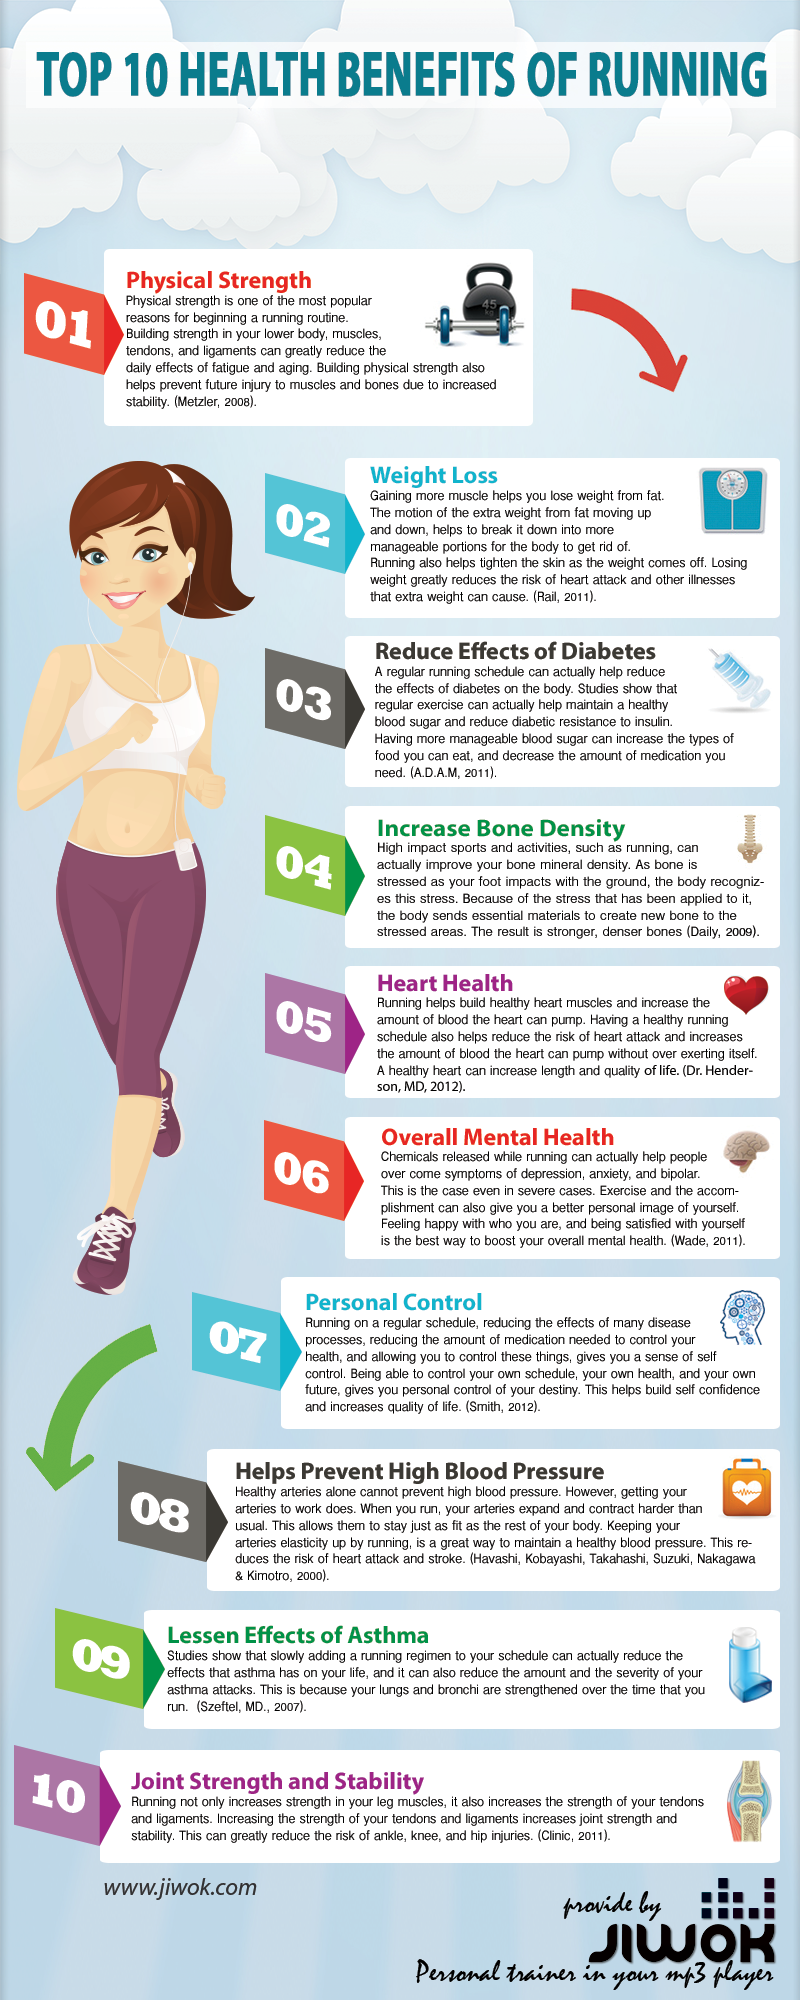 Amazing facts about running